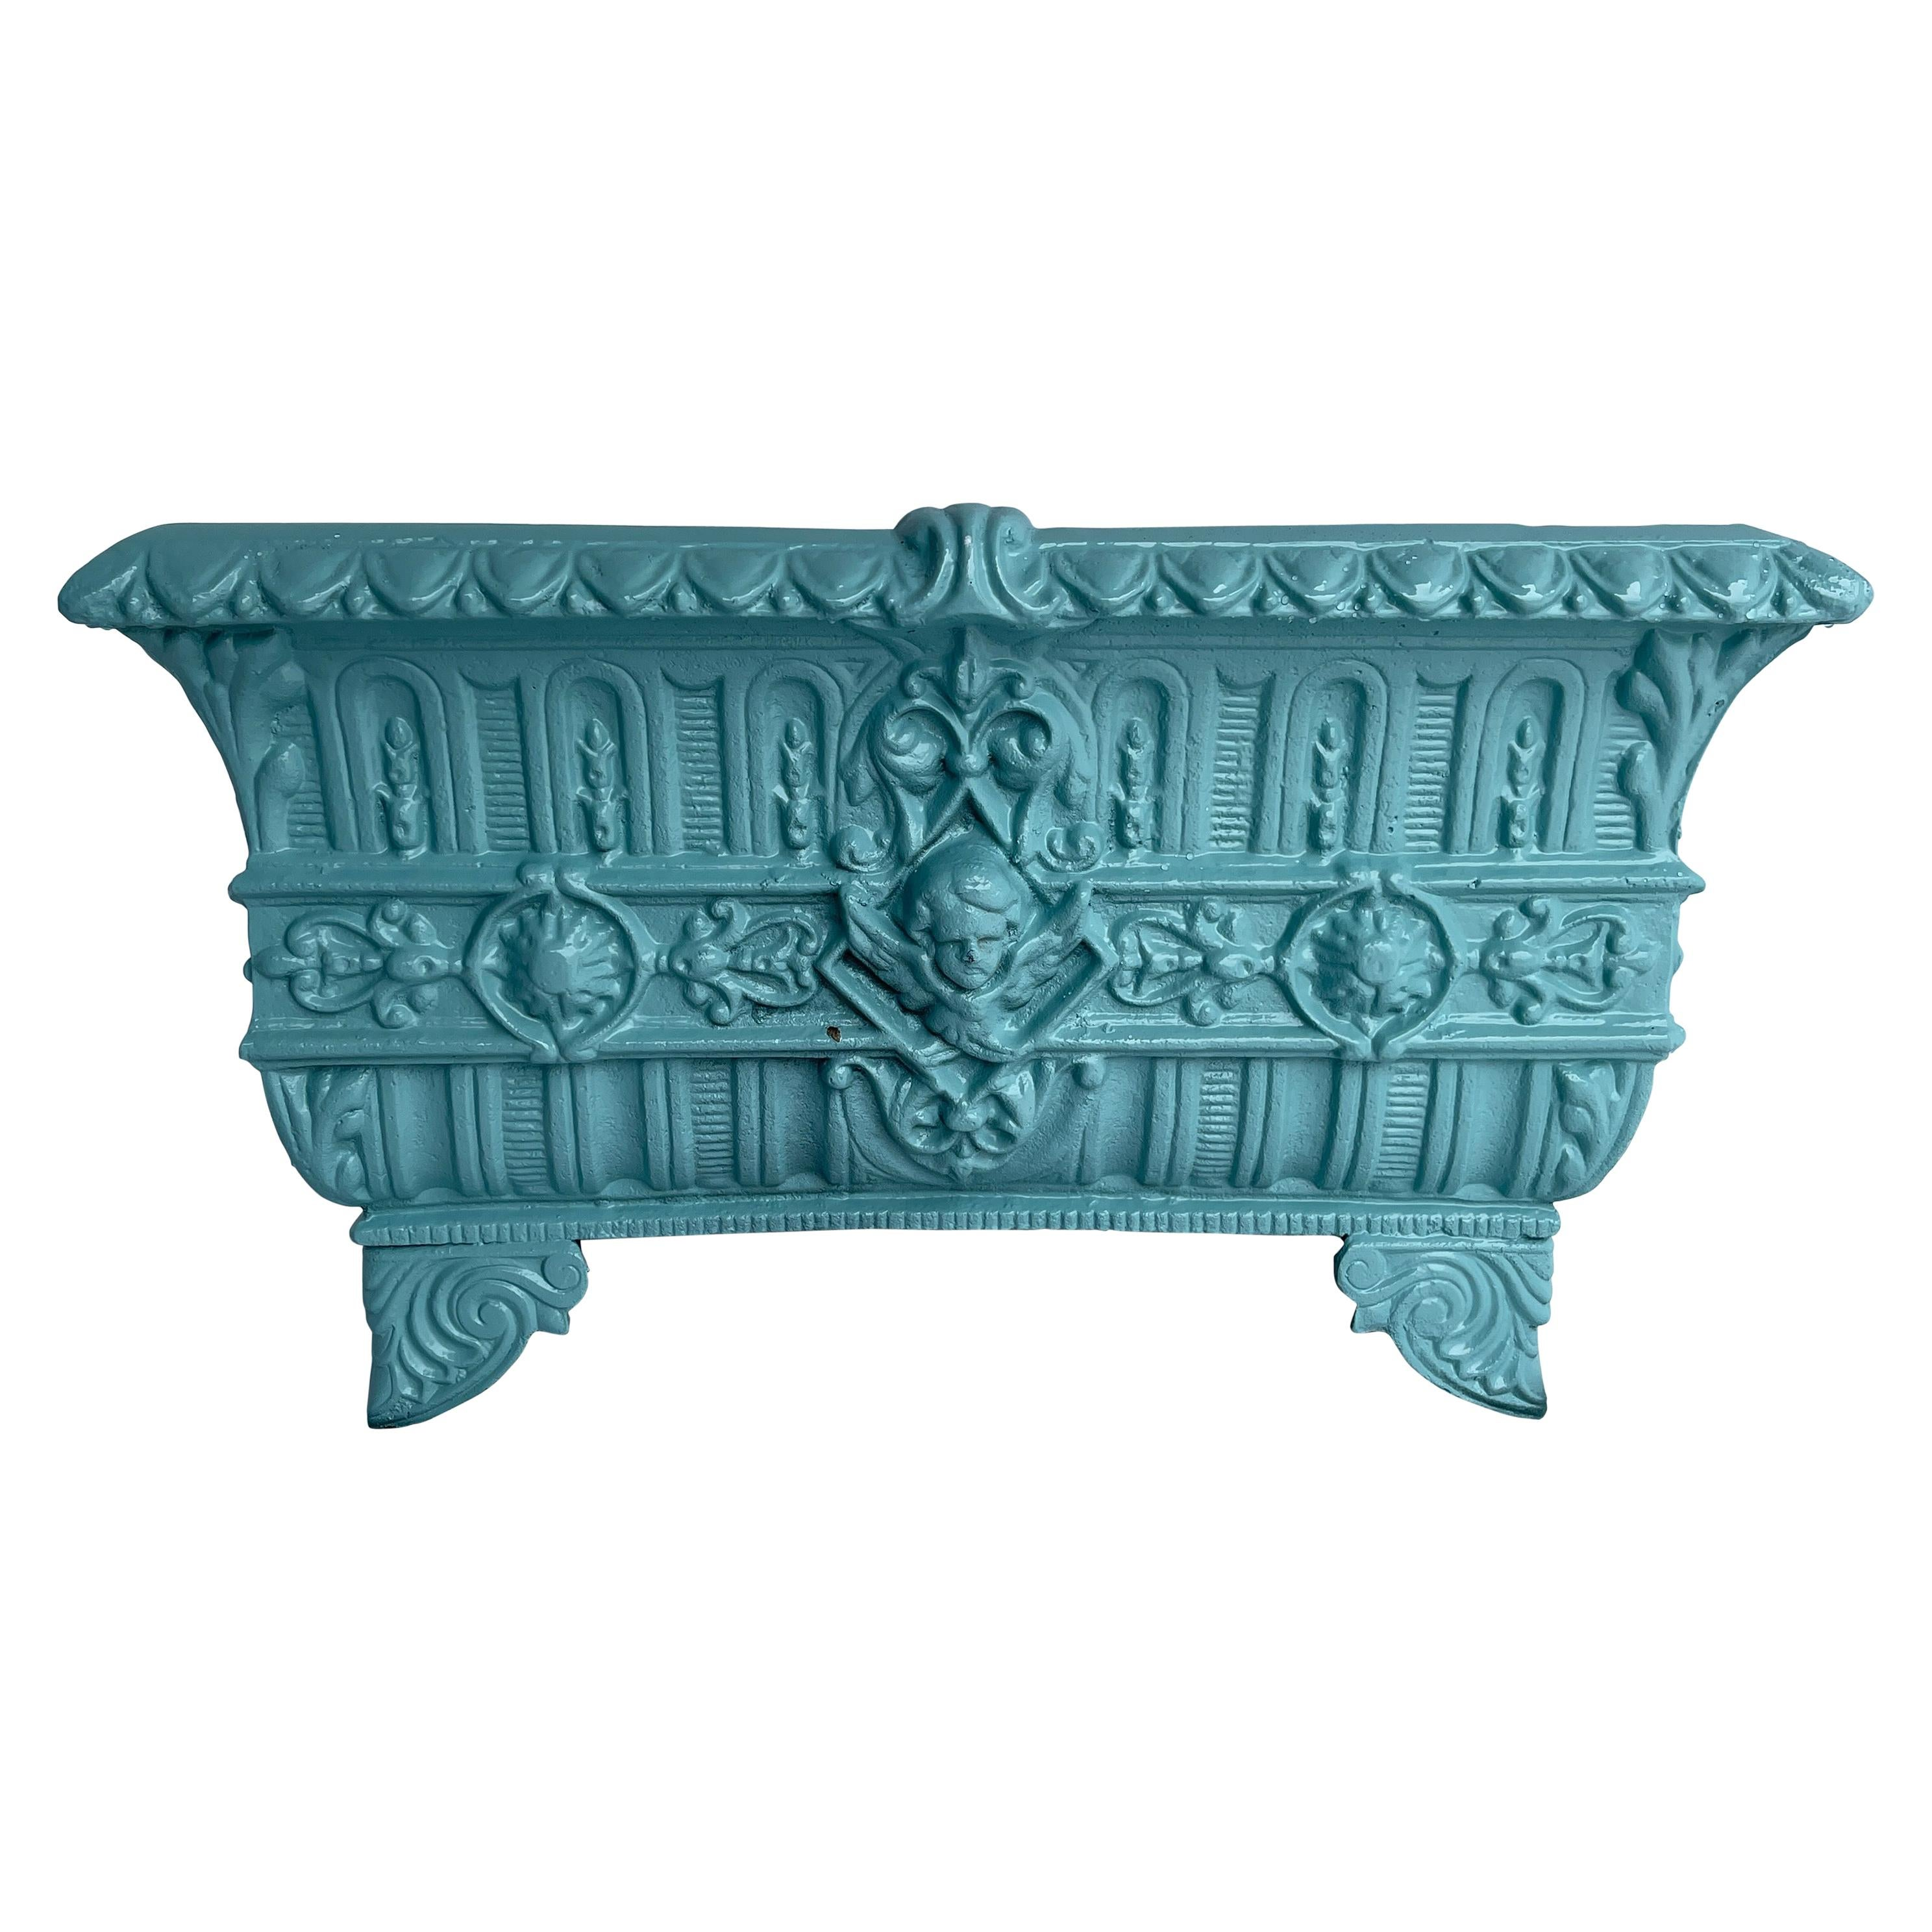 Large Antique Turquoise Cast Iron Footed Planter, Circa Early 1900's